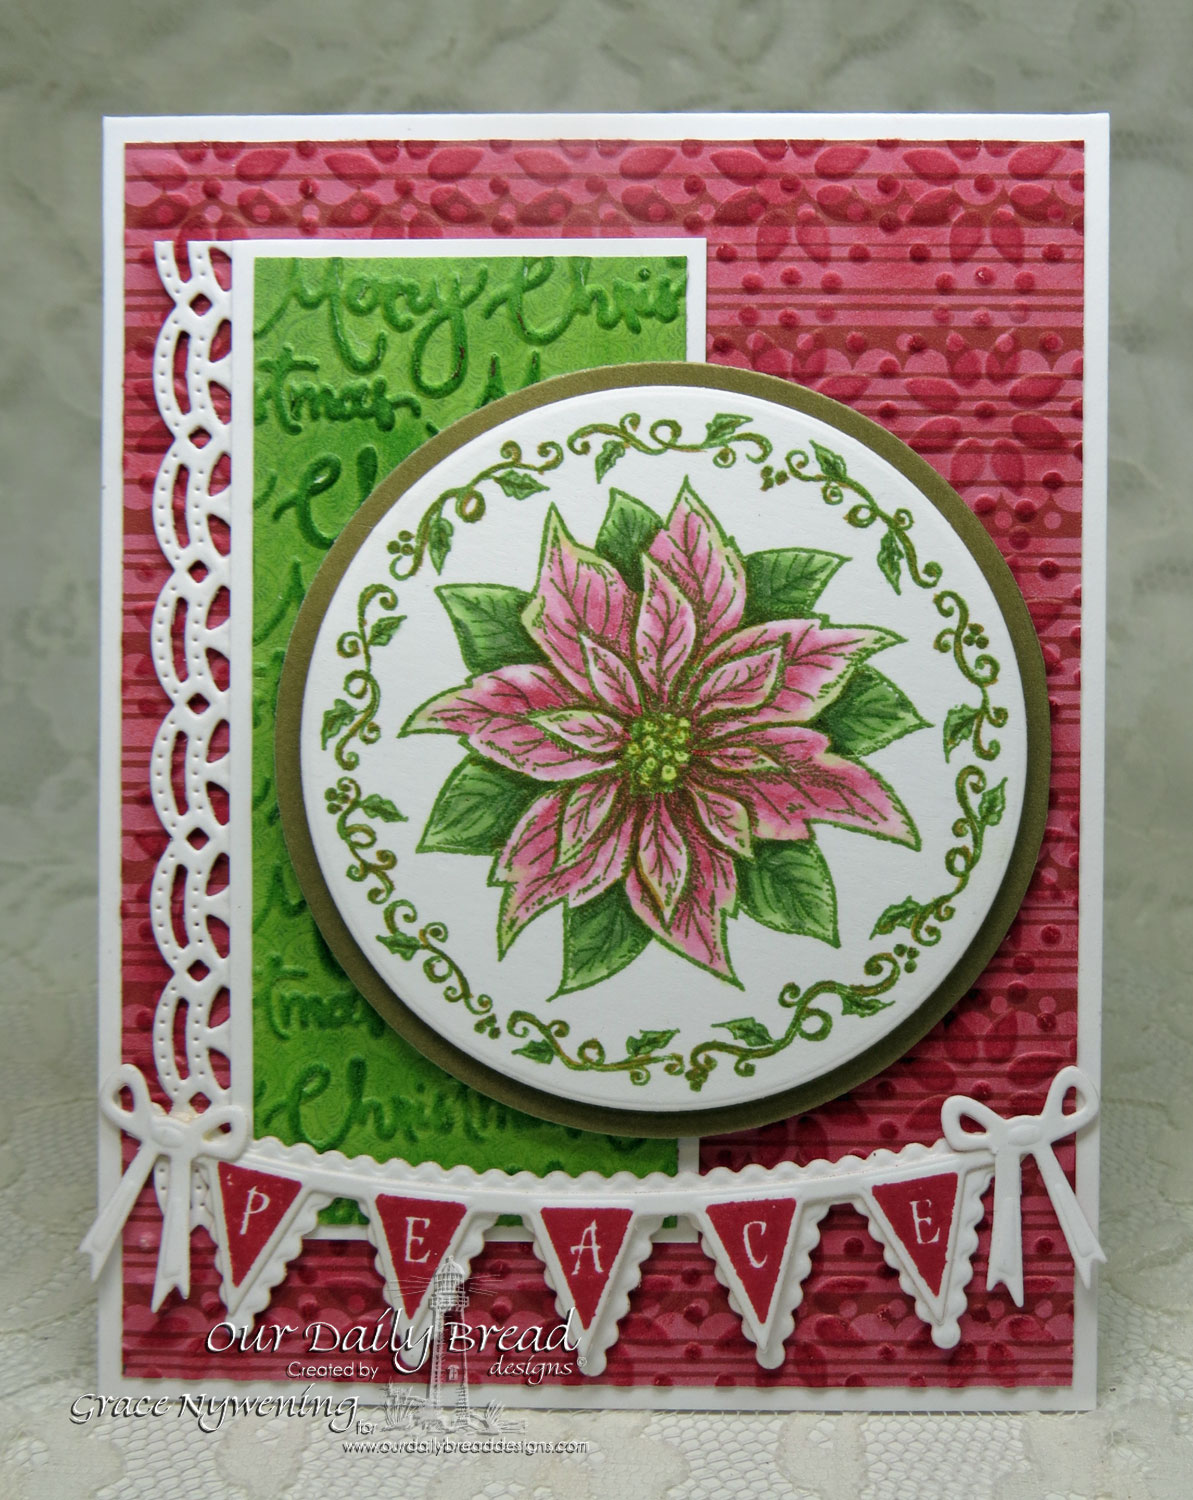 Stamps - Our Daily Bread Designs Poinsettia Ornament, Christmas Pennant Row, ODBD Custom Beautiful Borders Dies, ODBD Custom Pennant Row Die, ODBD Custom Circle Ornaments Die, ODBD Custom Matting Circles Die